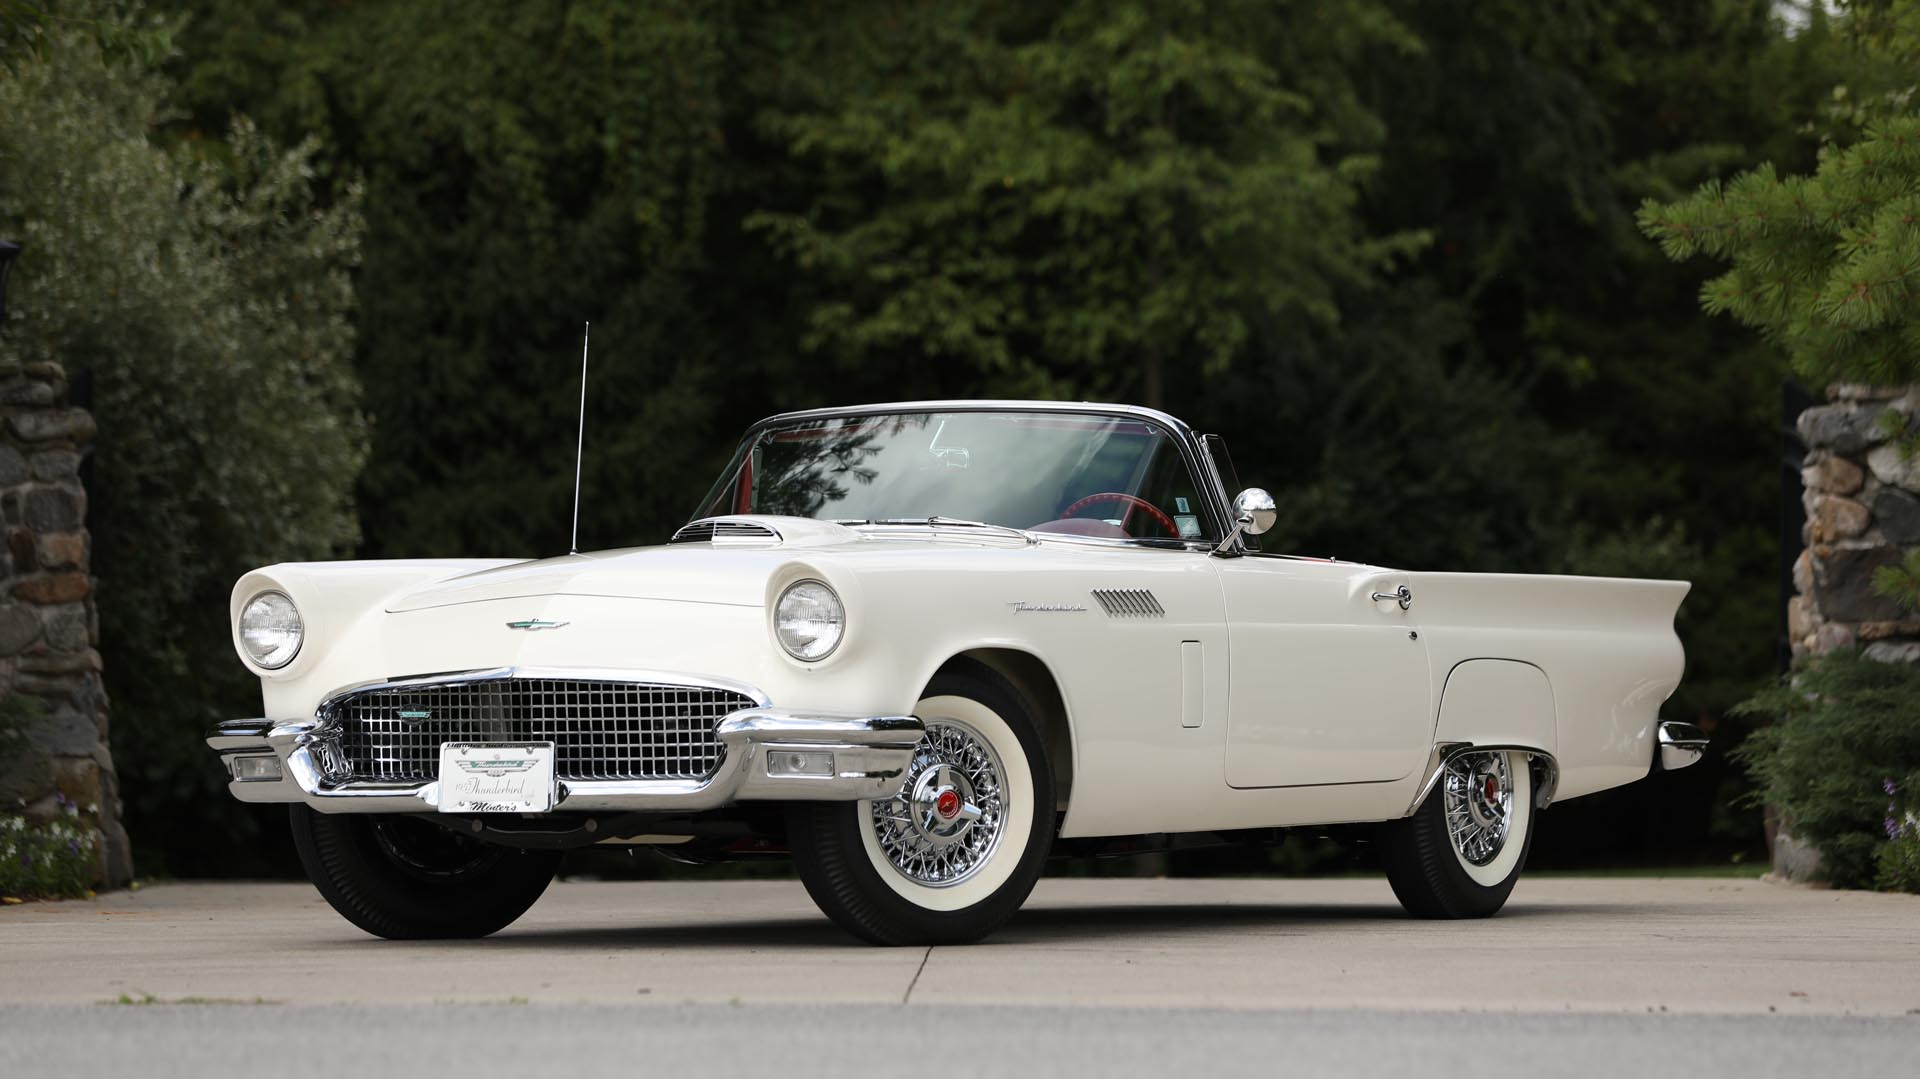 1957 Ford Thunderbird 'E Code' Convertible